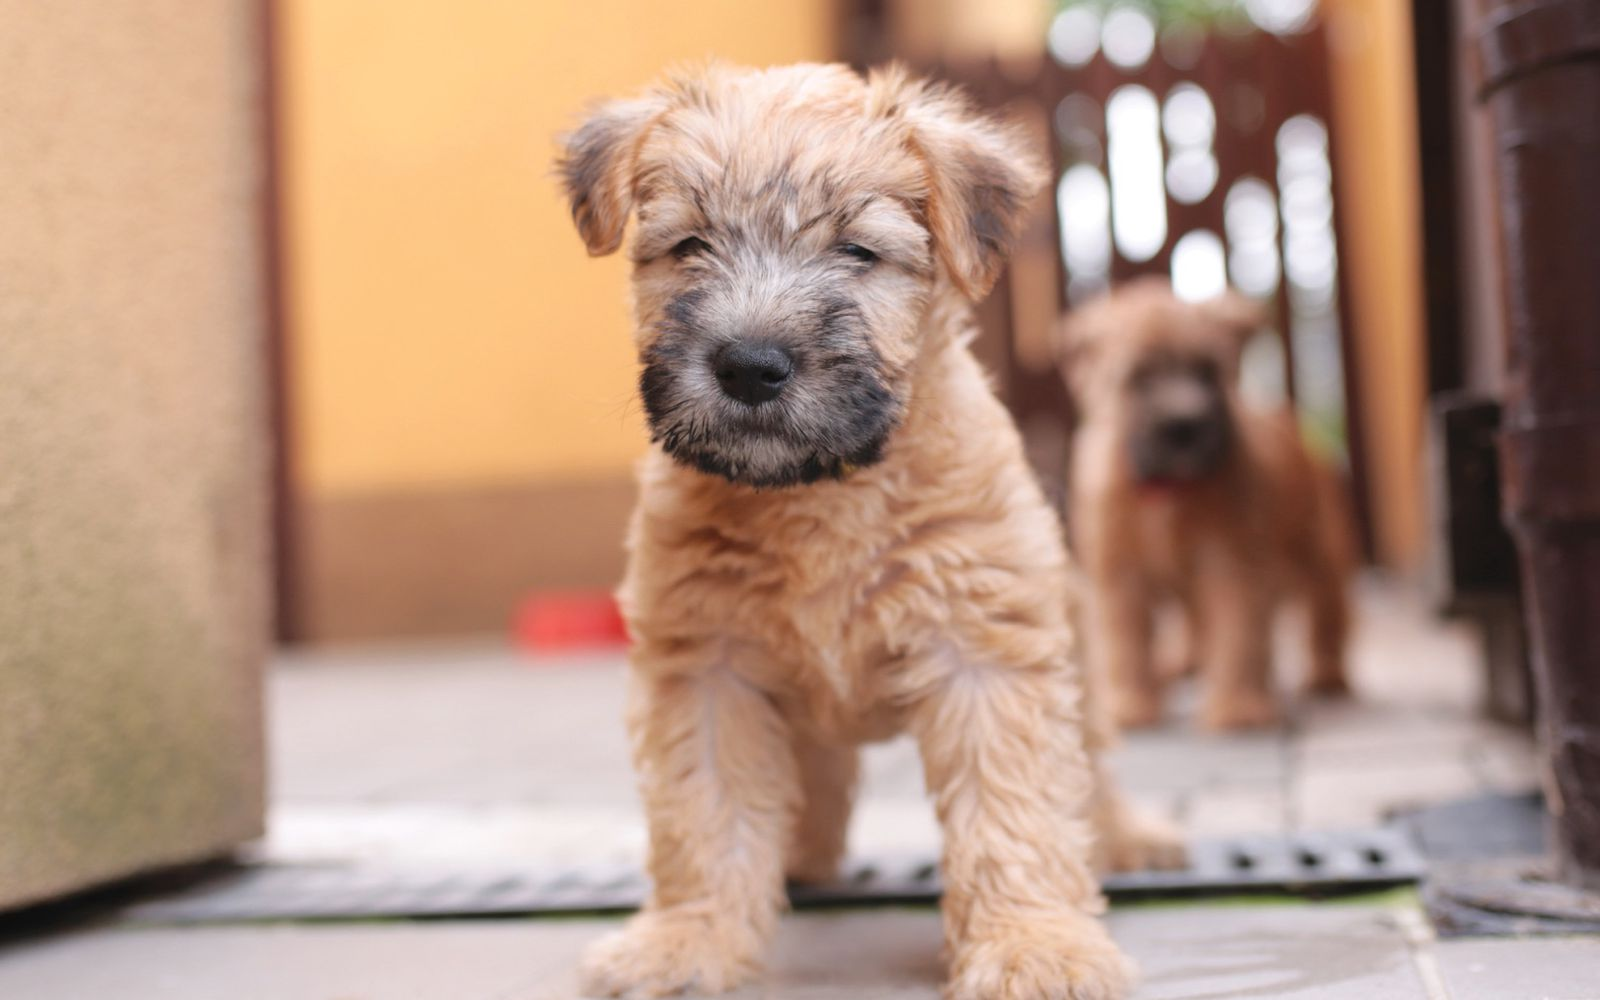 Soft Coated Wheaten Terrier - Puppy